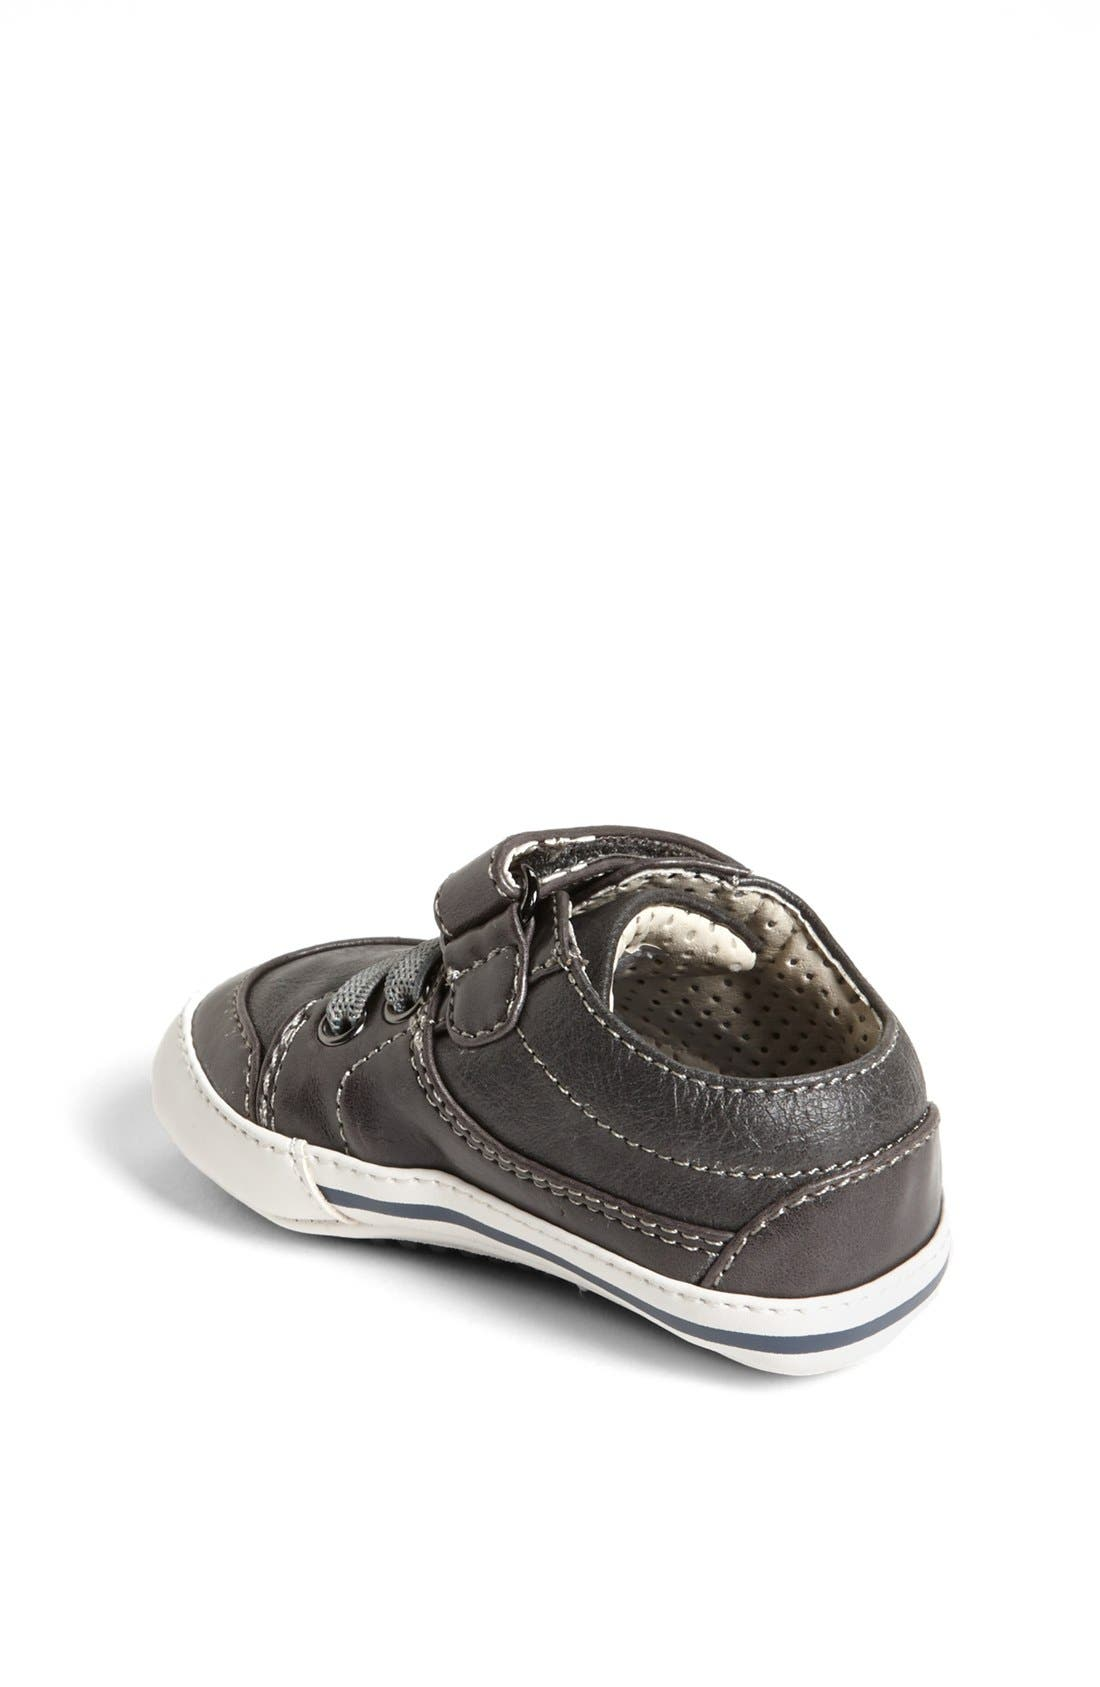 Alternate Image 2  - Cole Haan 'Mini Cory Funsport' Sneaker (Baby)